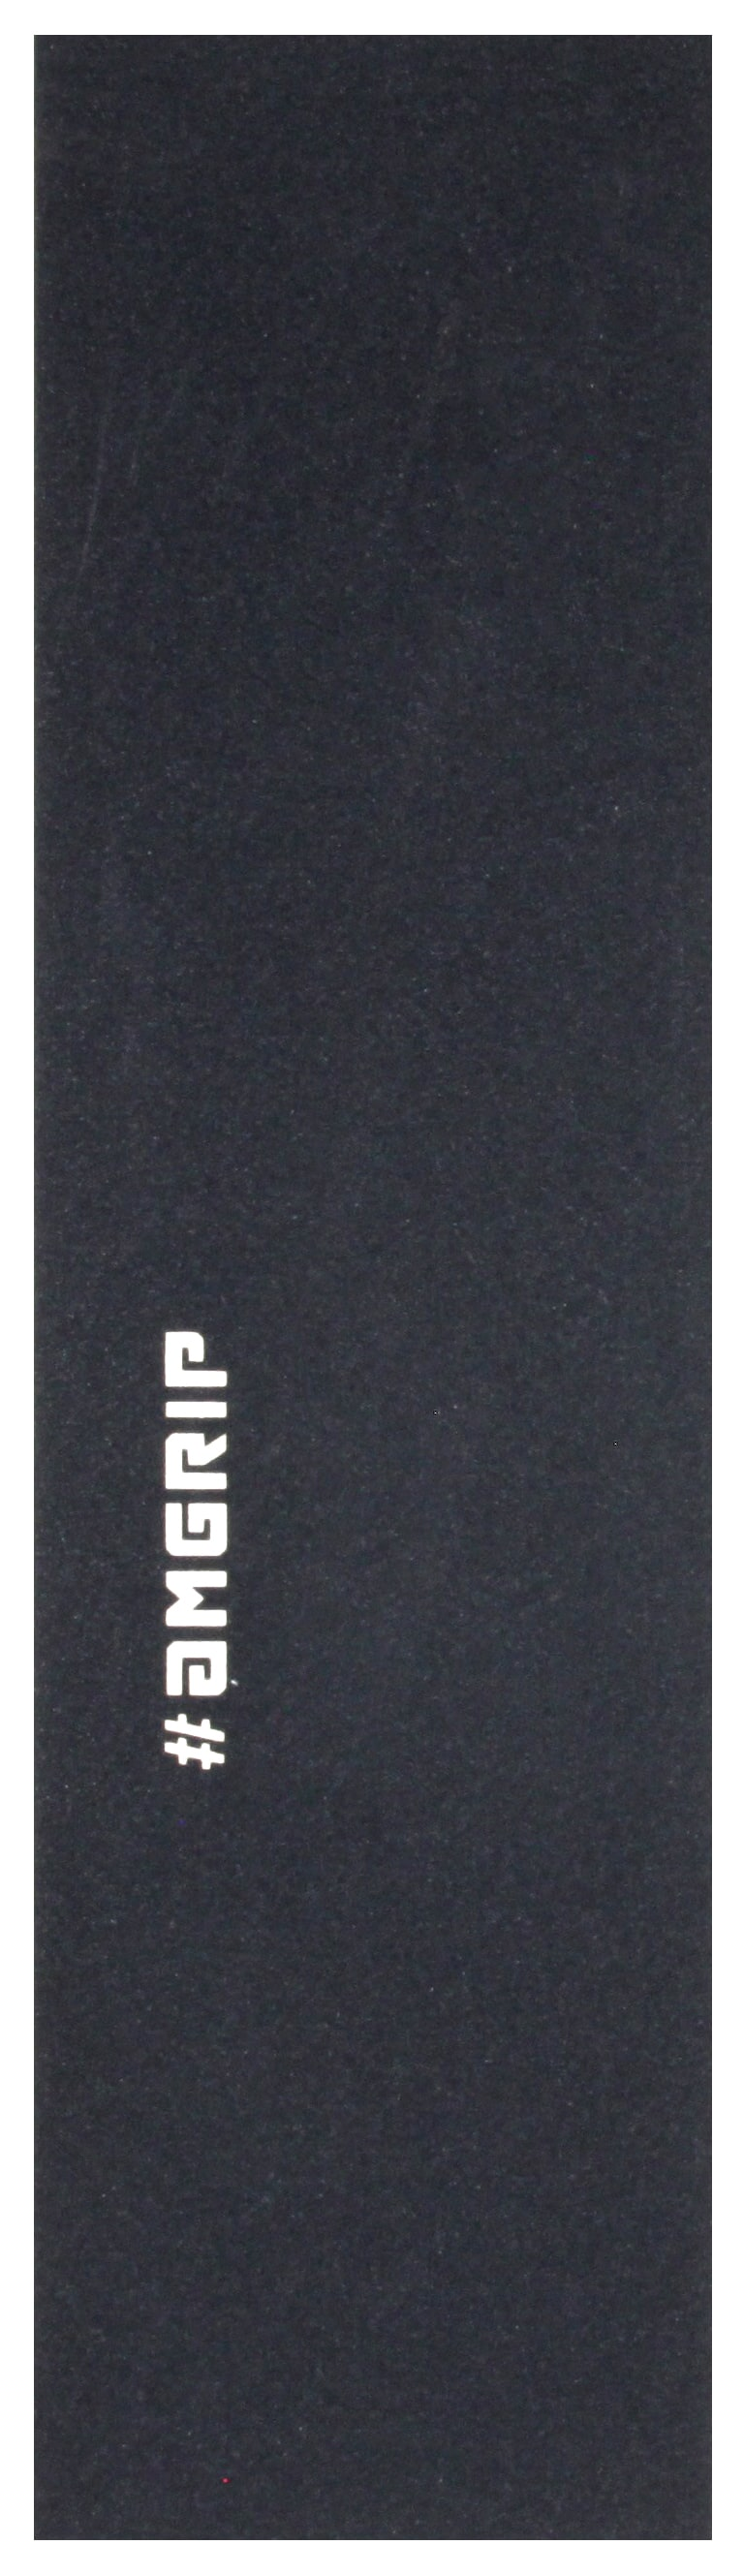 Image of AmGrip Skateboard Grip Tape - Hashtag